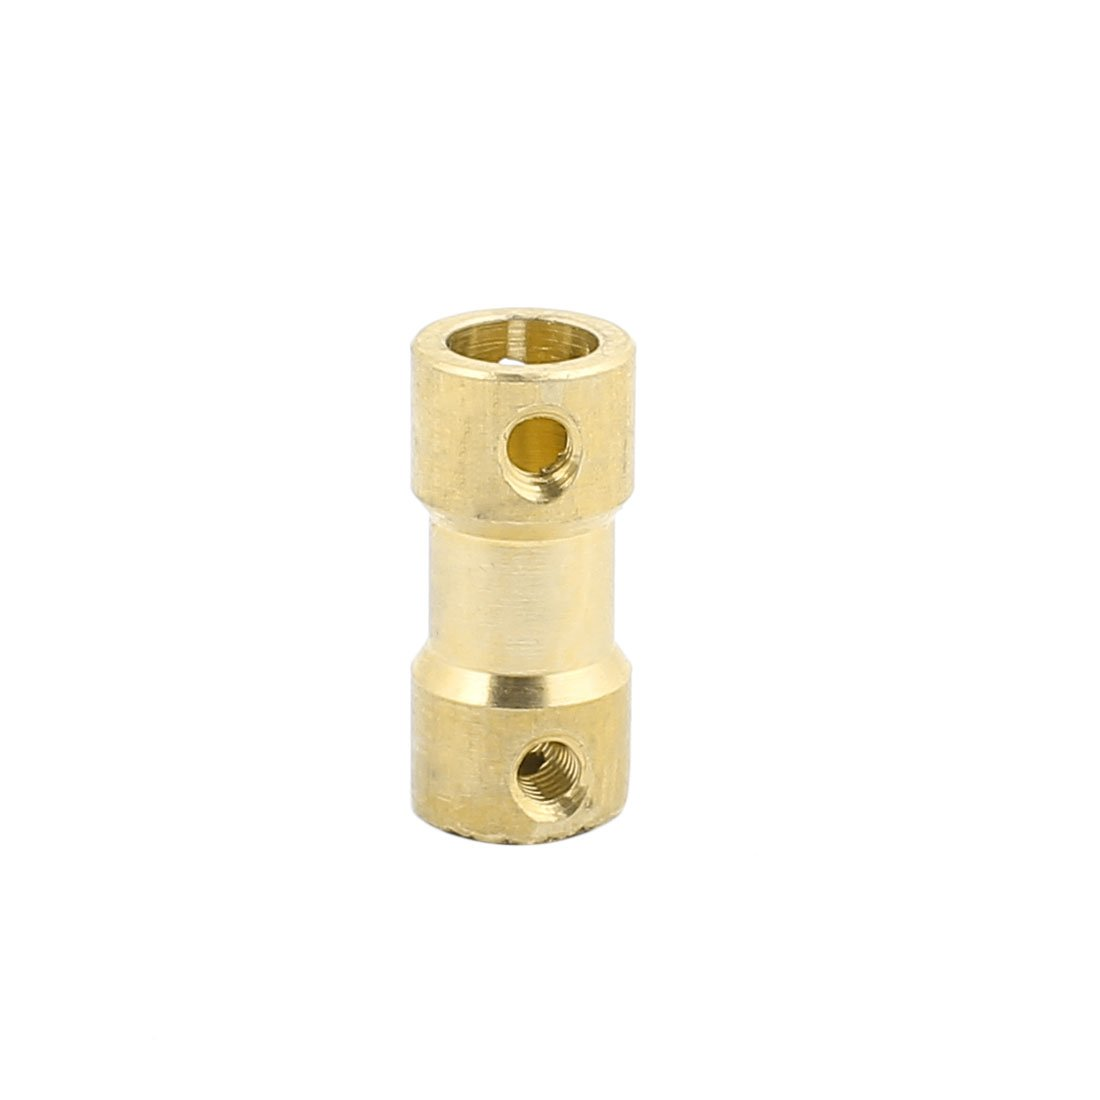 RC Airplane Helicopter Ship 2mm to 5mm Motor Shaft Coupling Sourcingmap a13090300ux0420